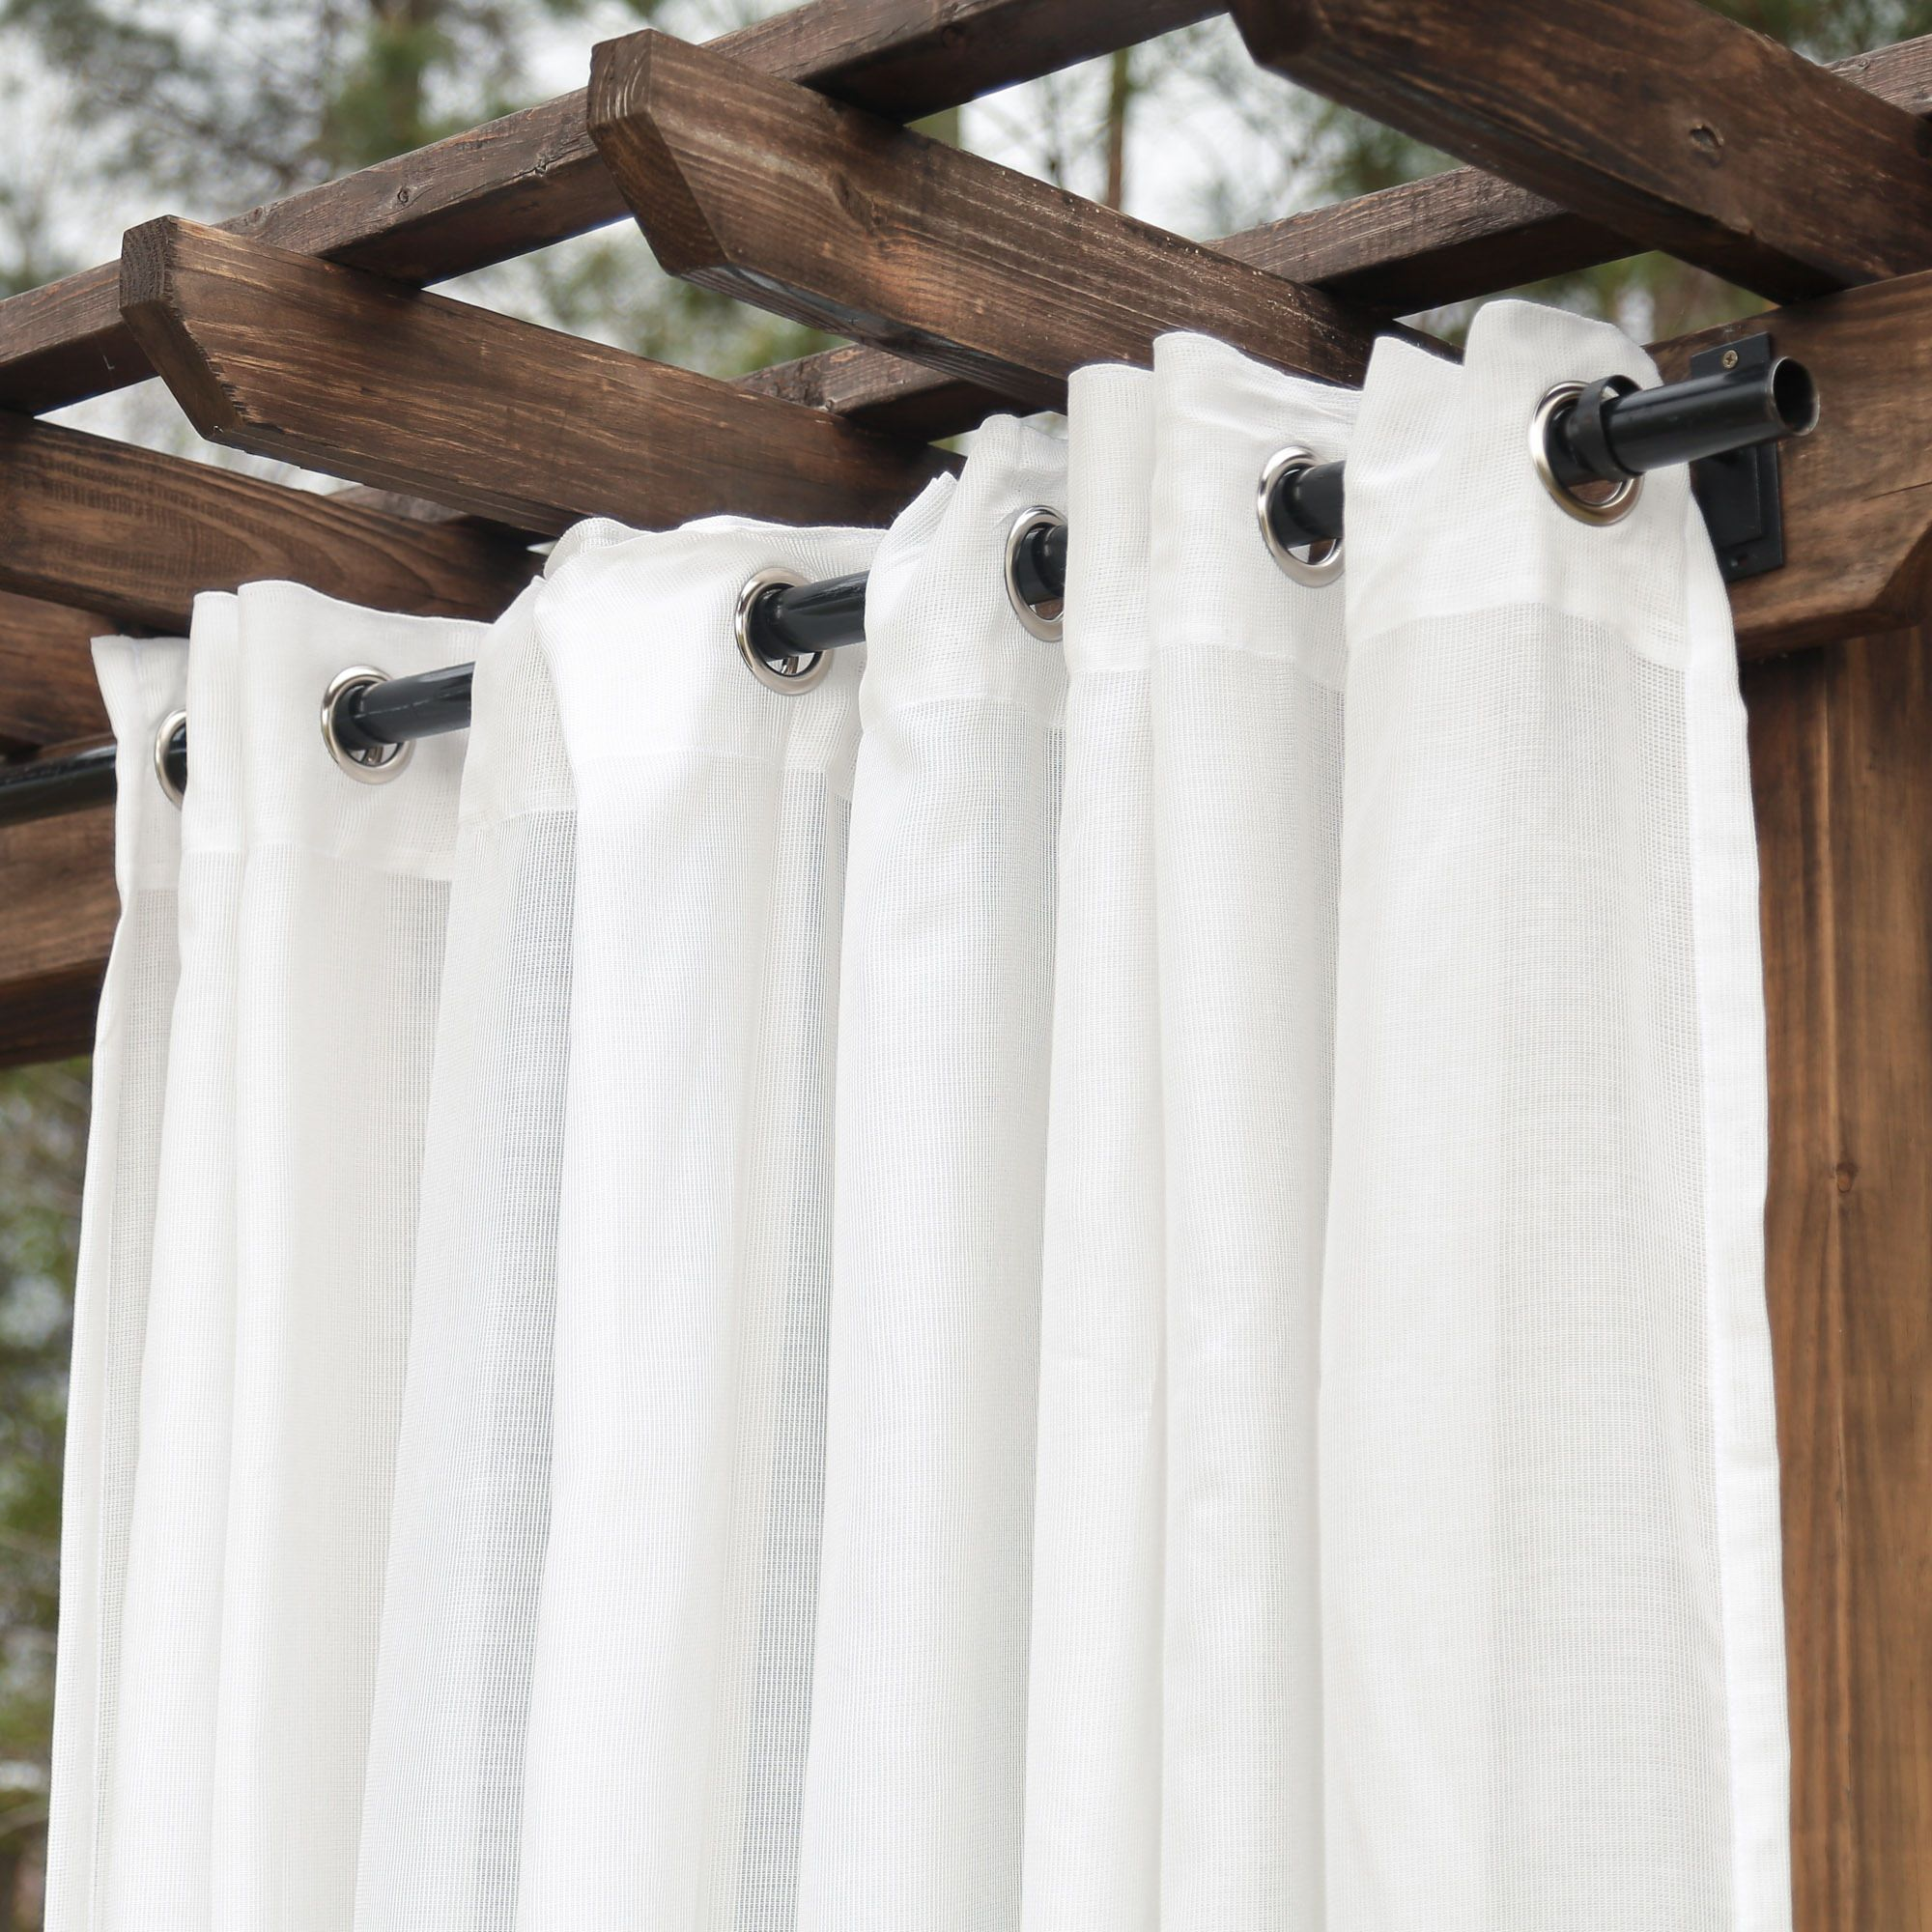 Tempotest Sheer White Extrawide Outdoor Curtain Tempotest Outdoor Curtains